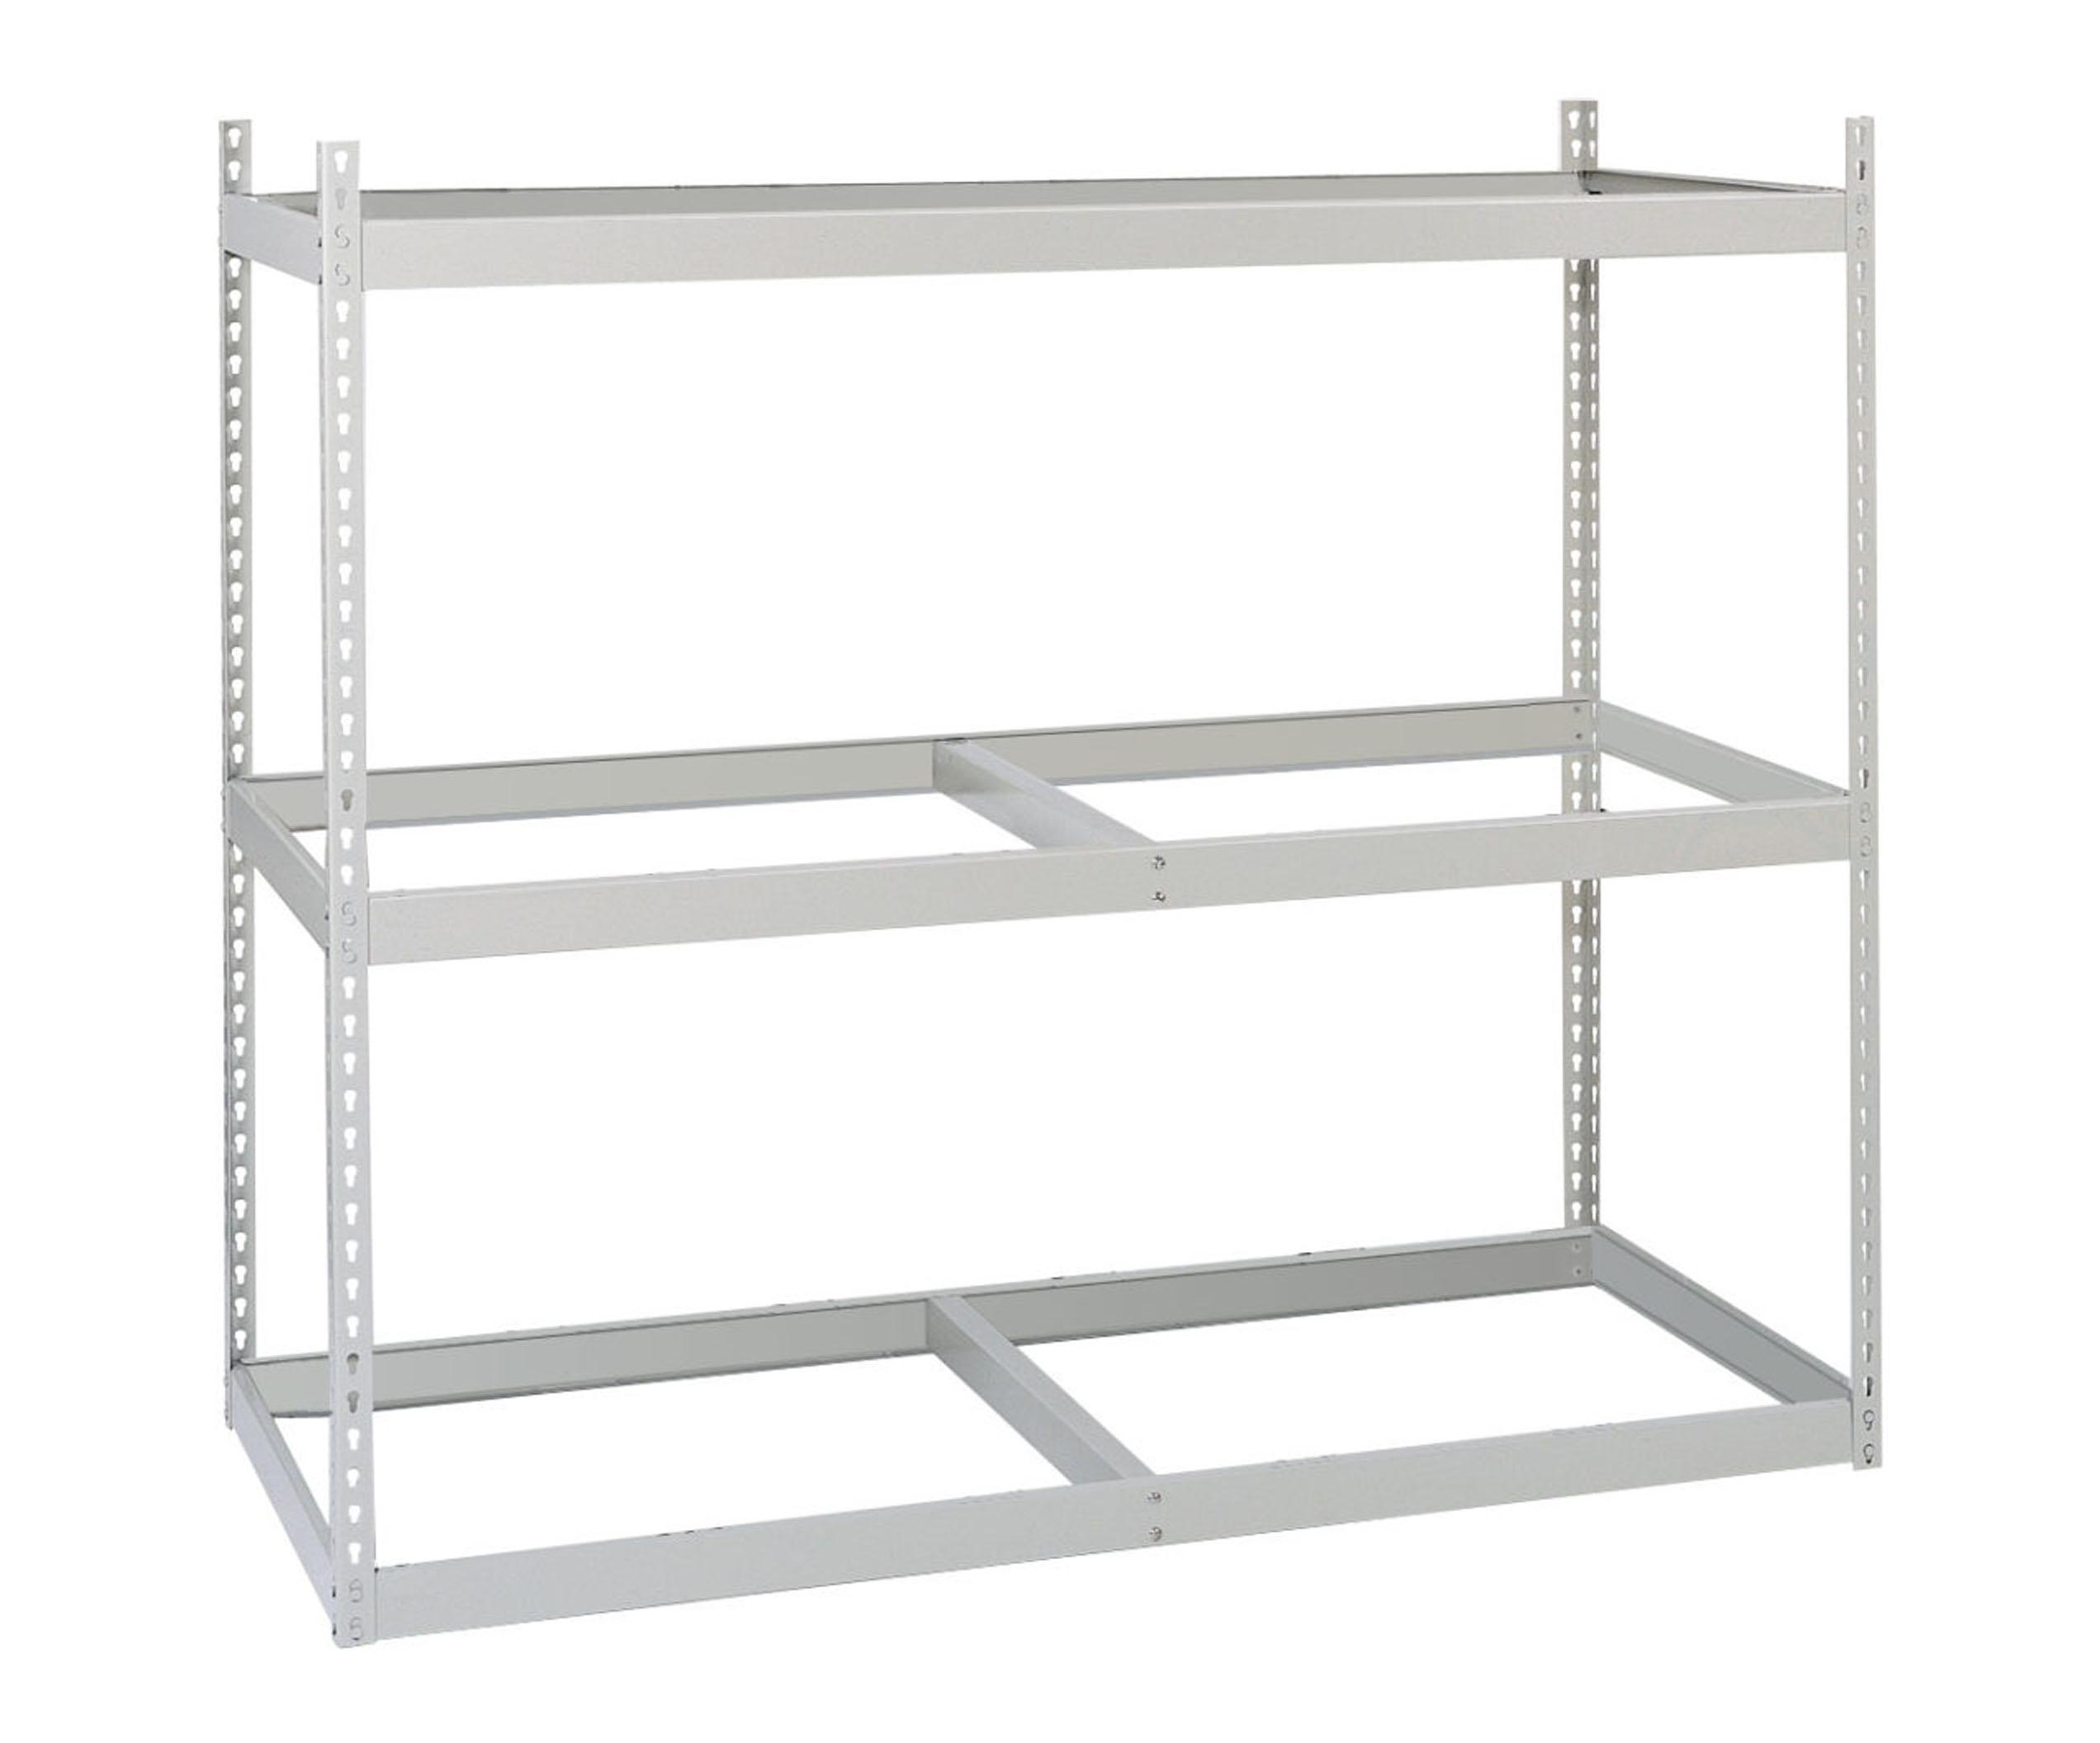 Lyon Record Storage Rack Basic Rack – Starter